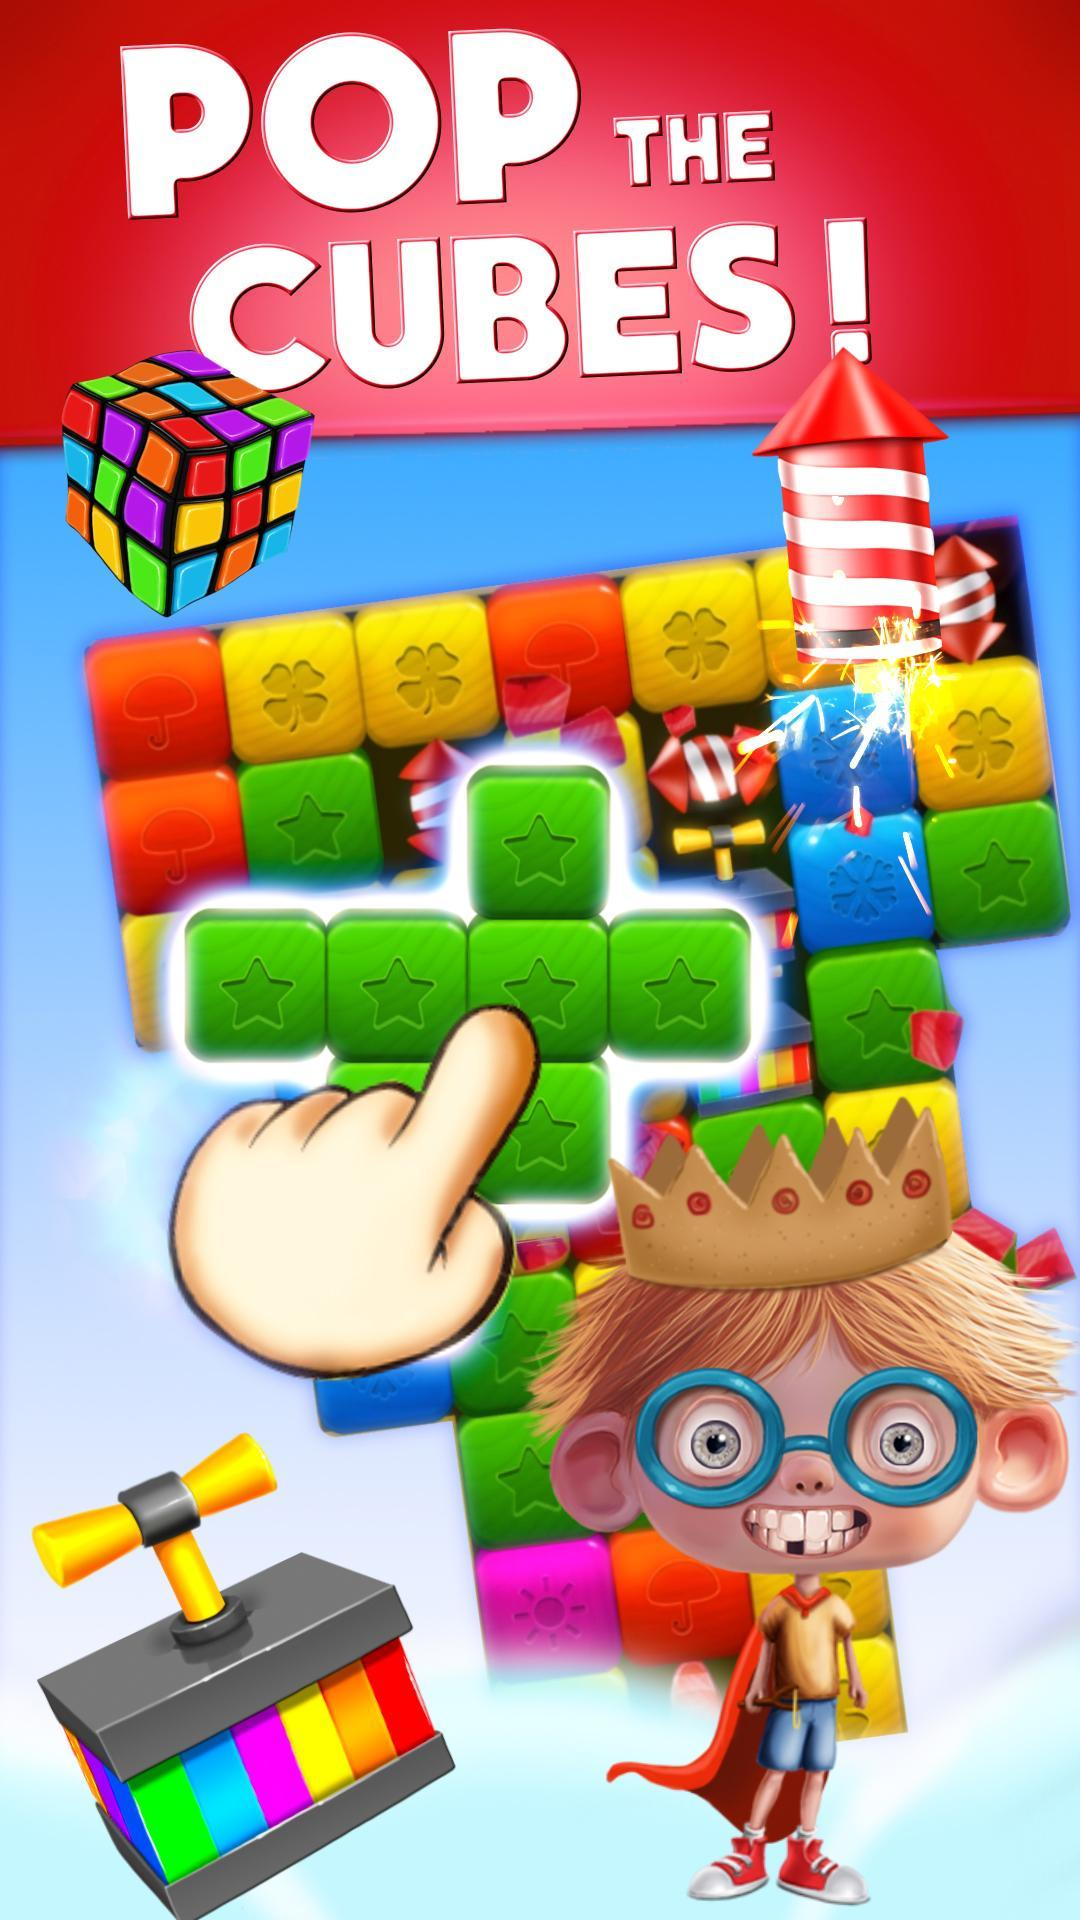 Toy Box Crazy Story - toys drop cubes 454 Screenshot 17